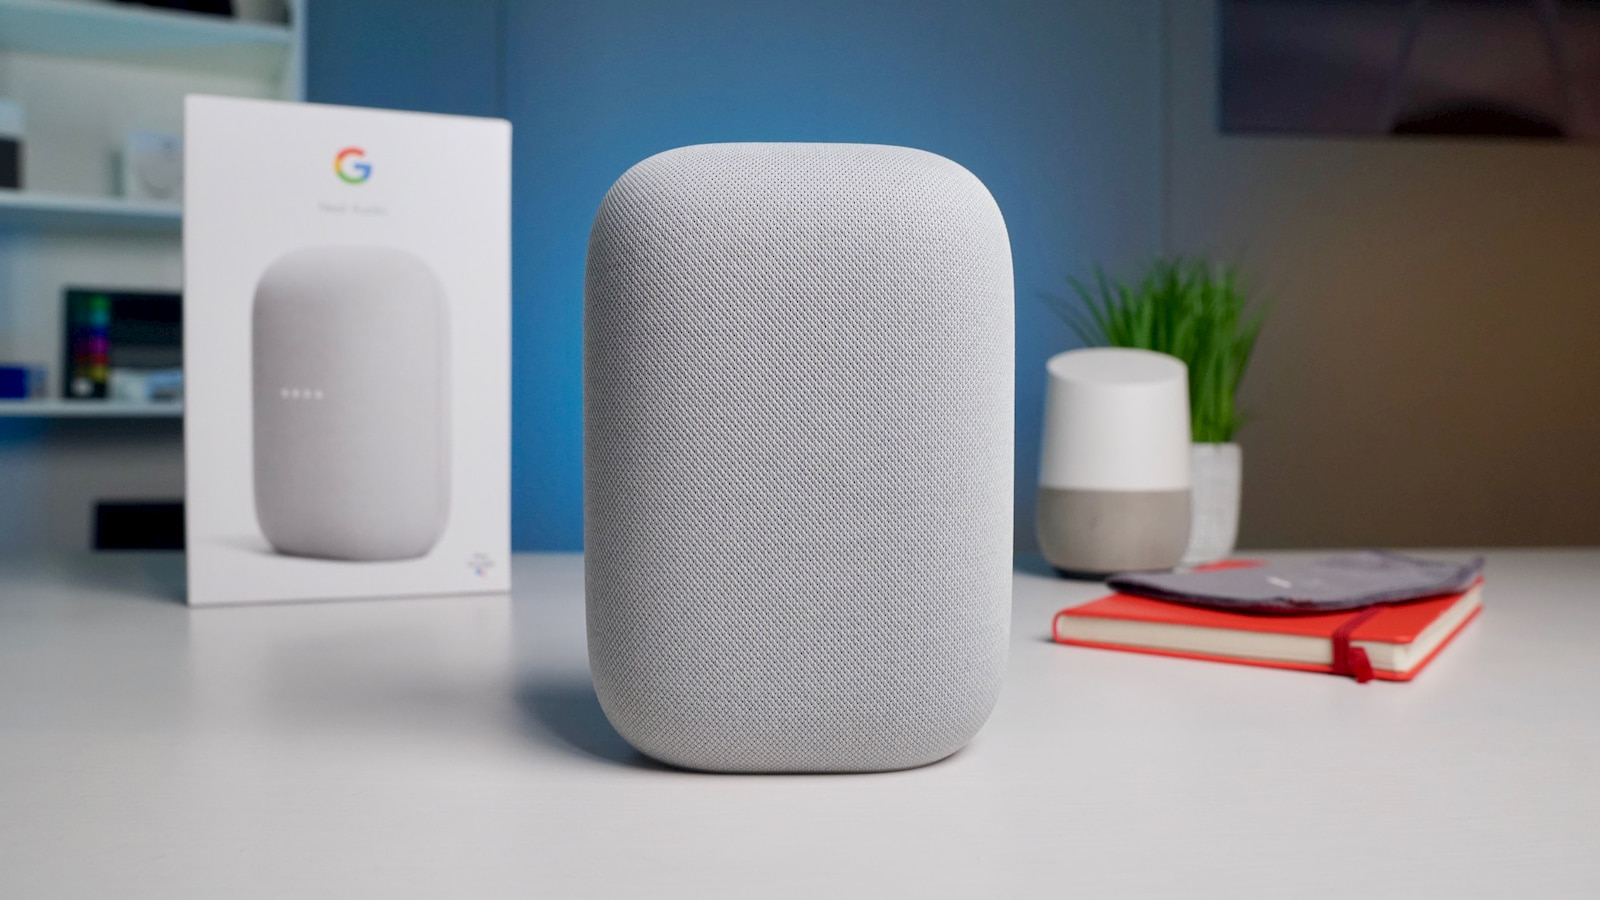 Google's Nest Audio could eventually be a part of a home theater setup